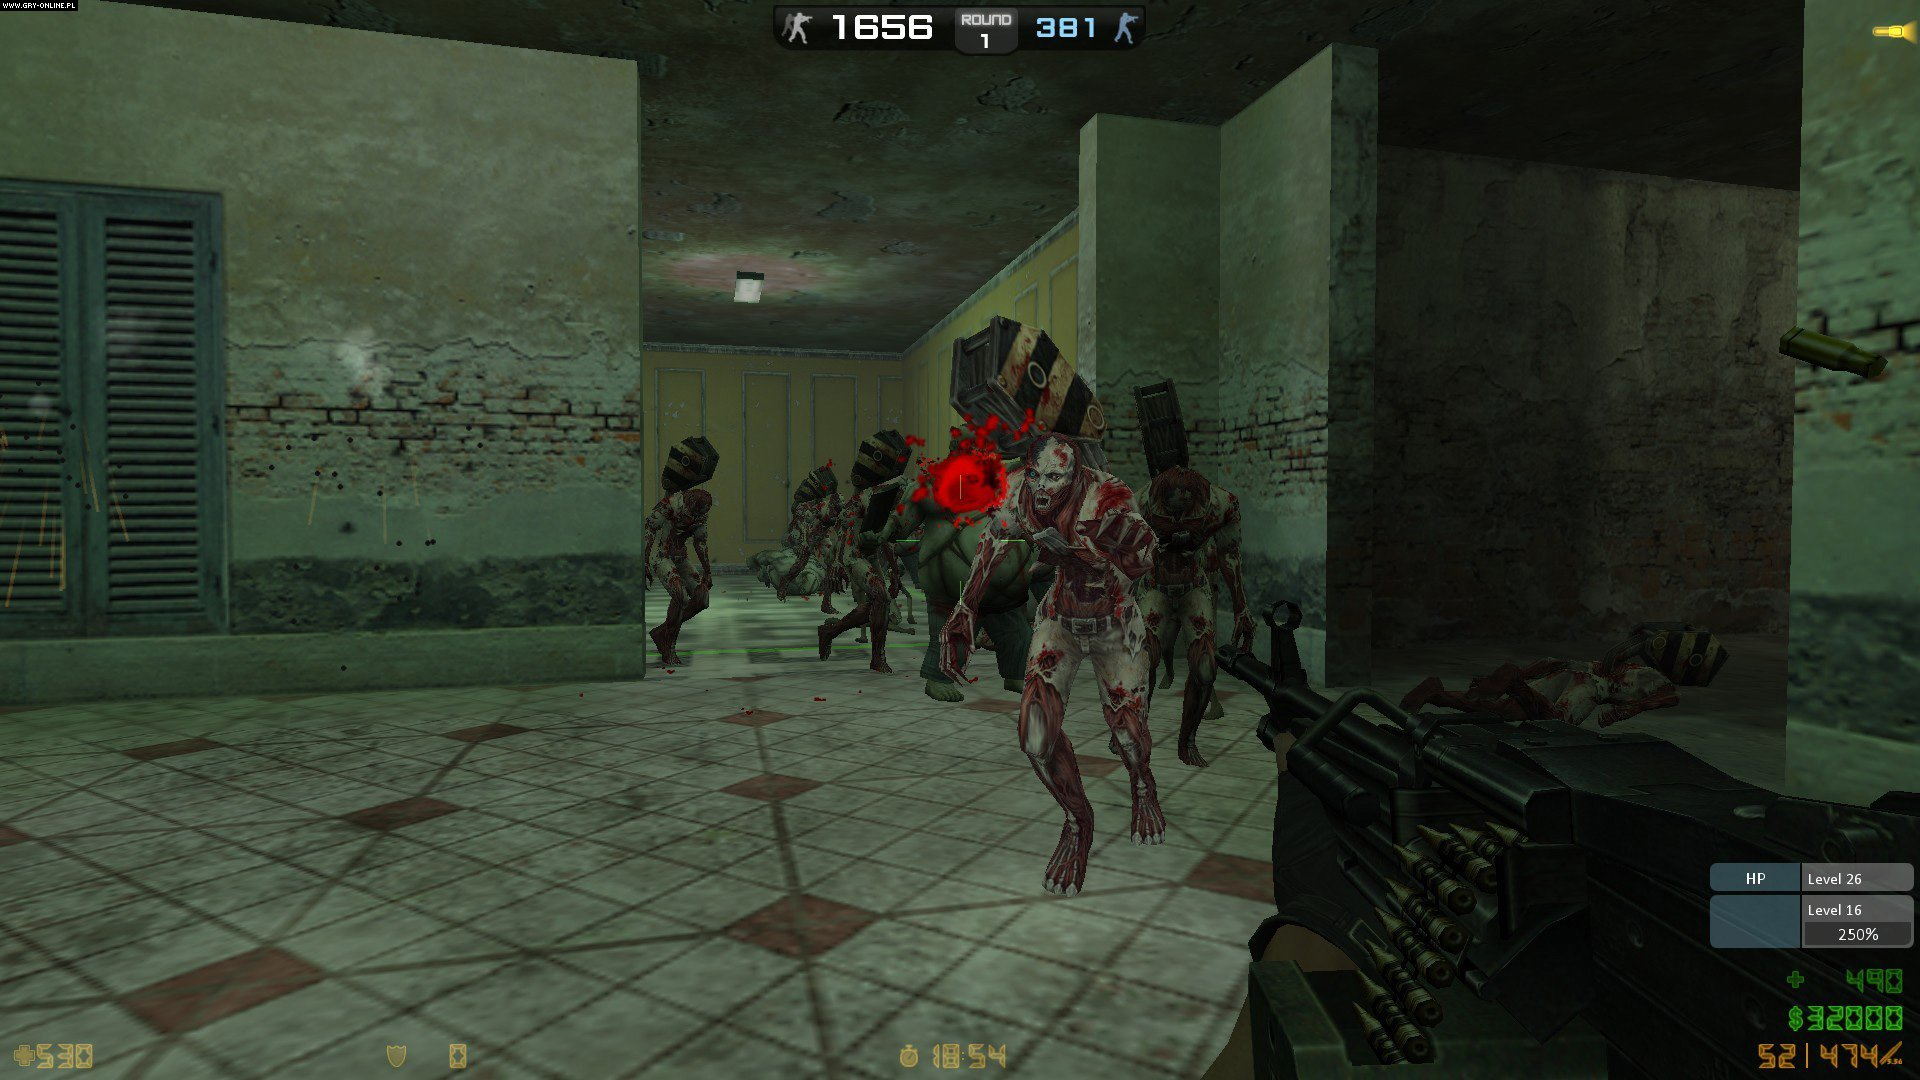 Counter Strike Nexon Zombies PC Games Image 1 14 Inc